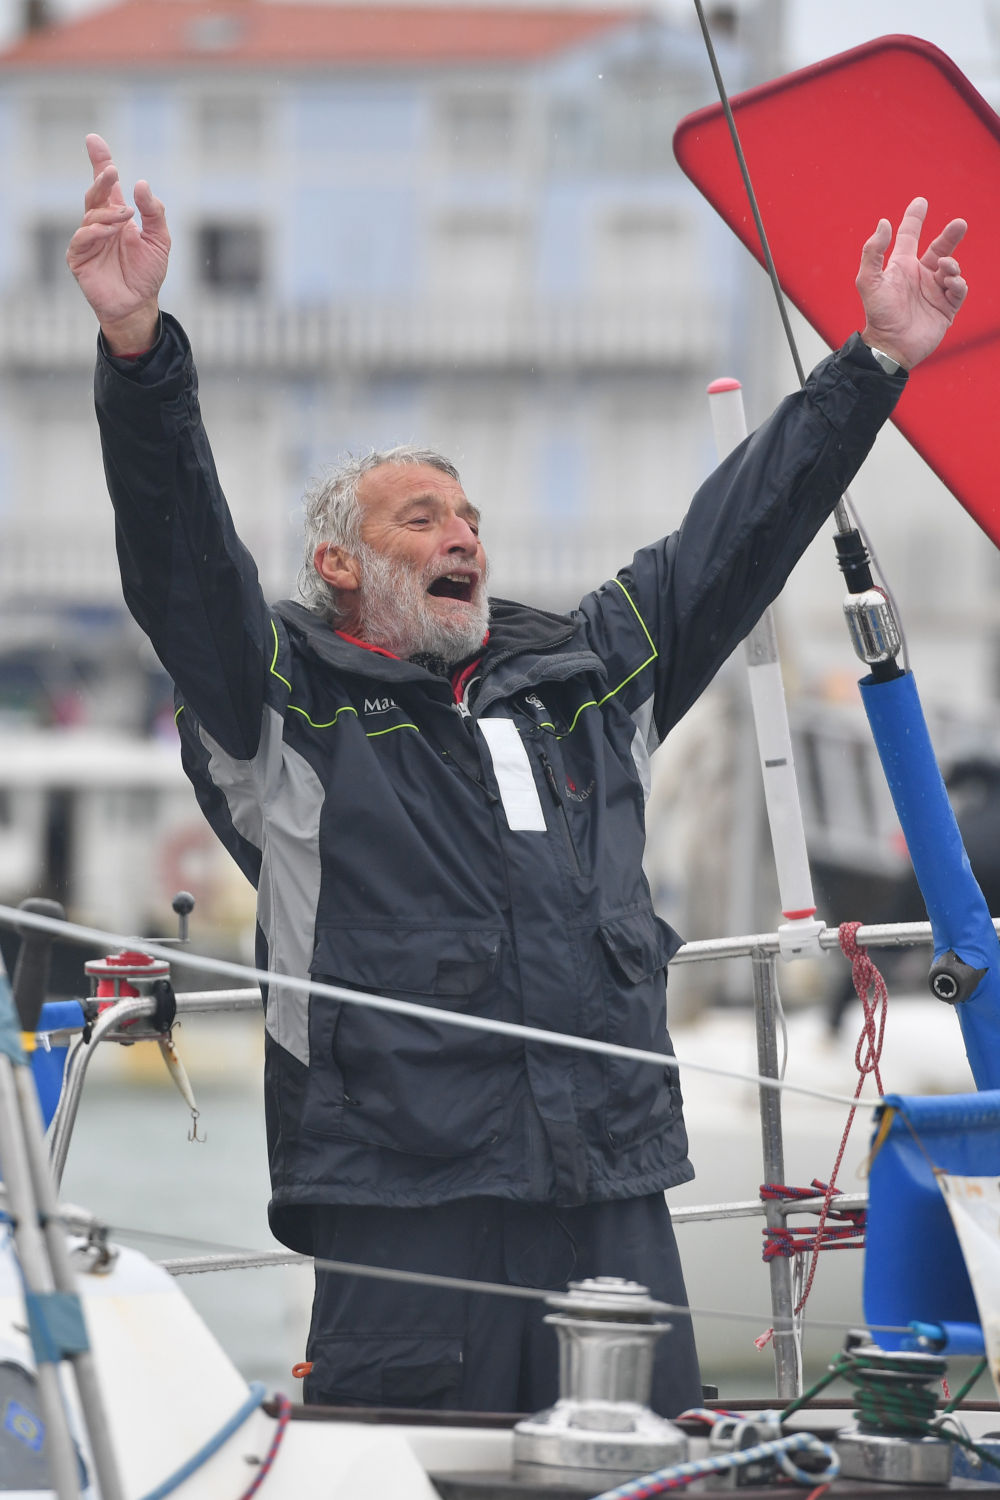 Jean Luc Van Den Heede with his hands up in the air, celebrating his victory on board his boat.